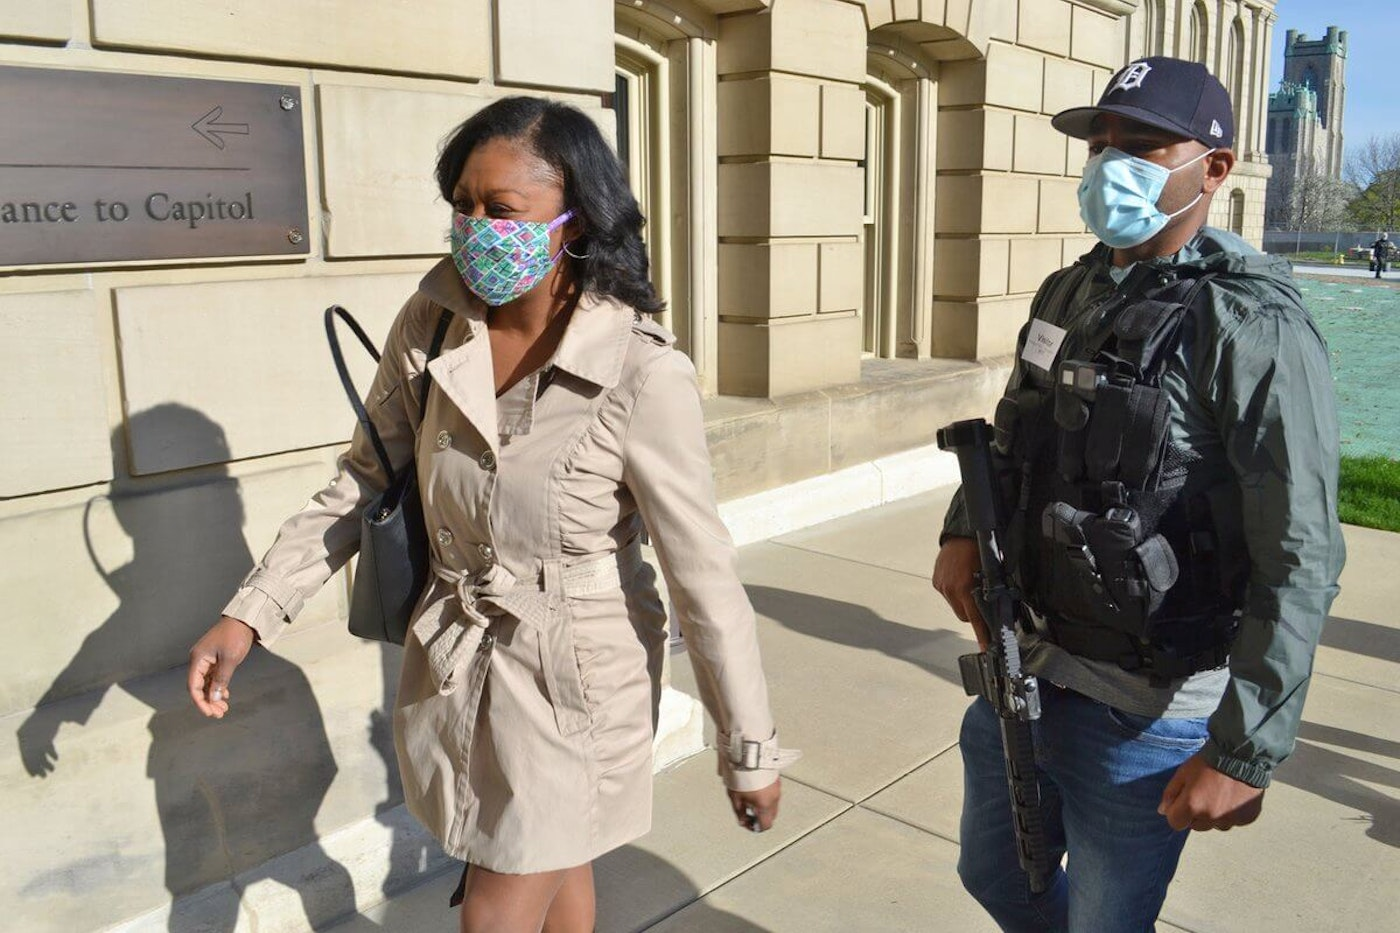 Rep. Sarah Anthony is being escorted to the state capitol by an armed militia. Photo courtesy of Twitter